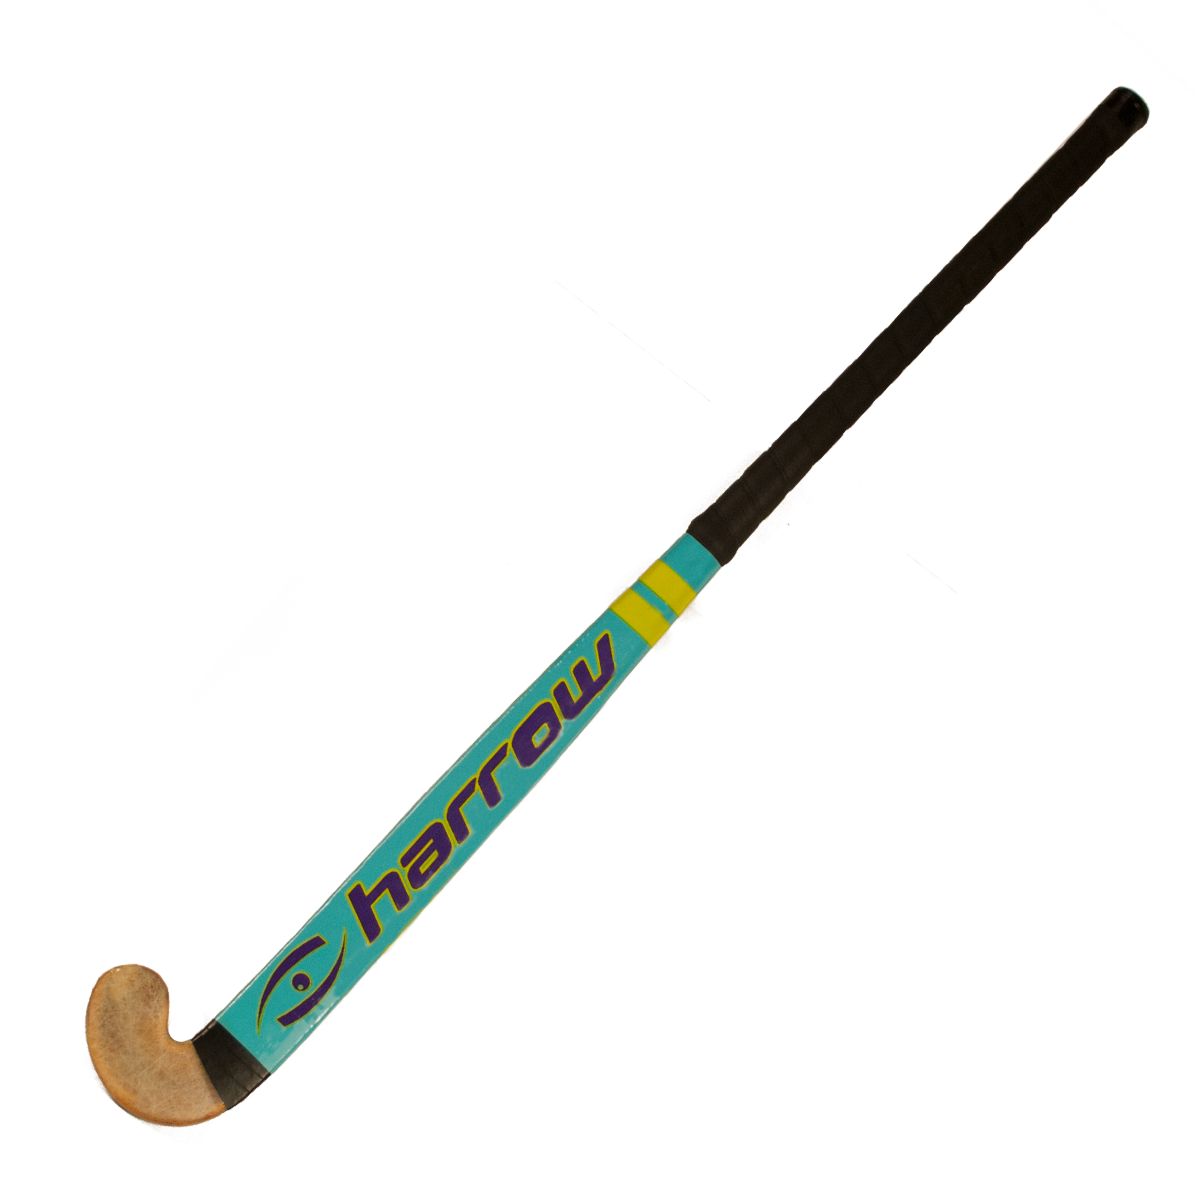 Fundamental Field Hockey Stick 36 Carolina